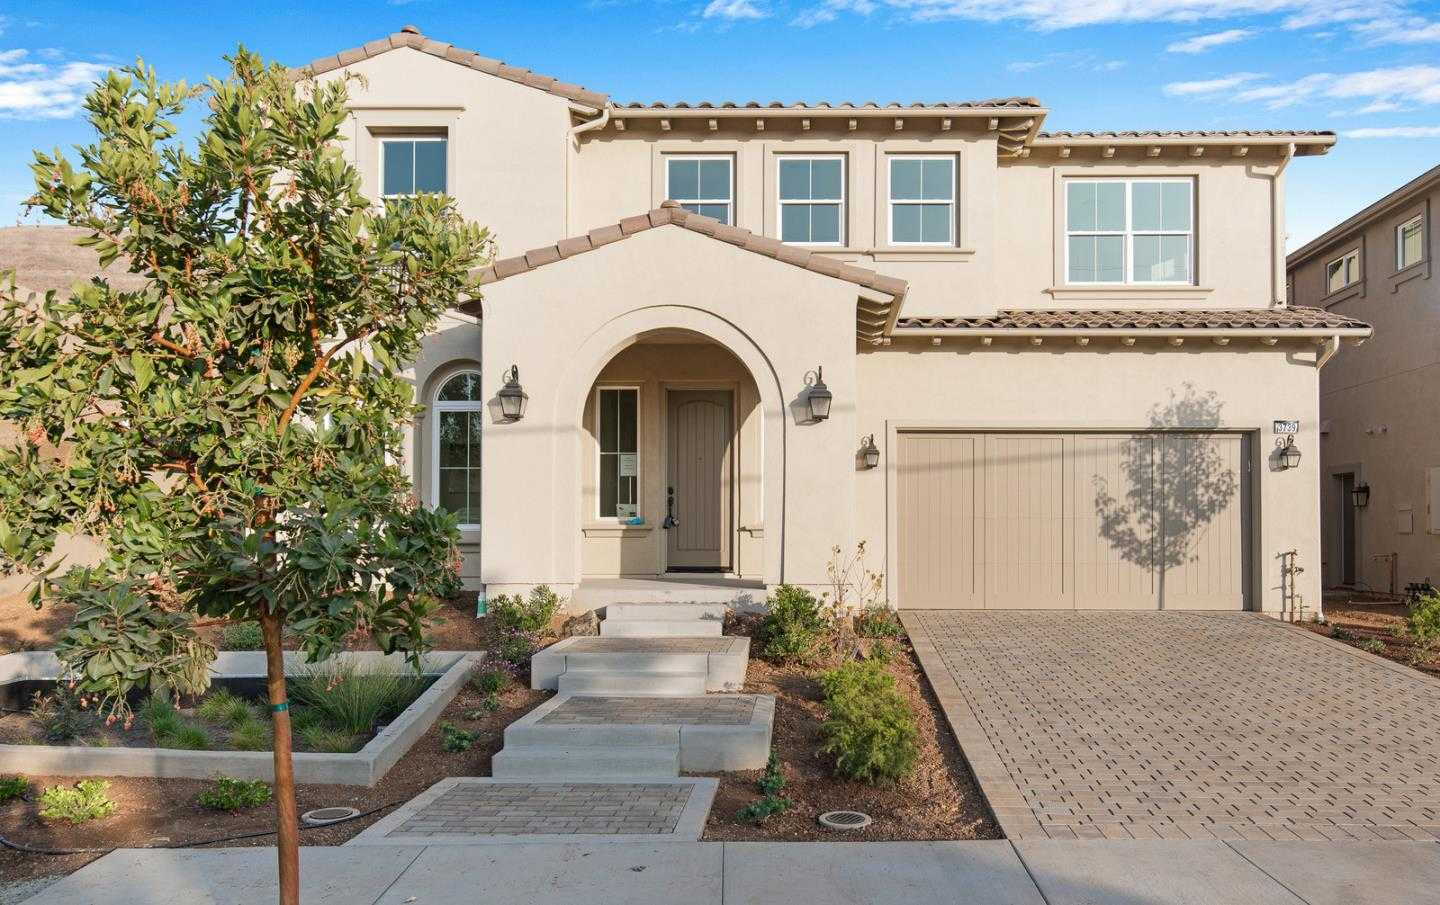 $2,195,000 - 5Br/5Ba -  for Sale in San Jose